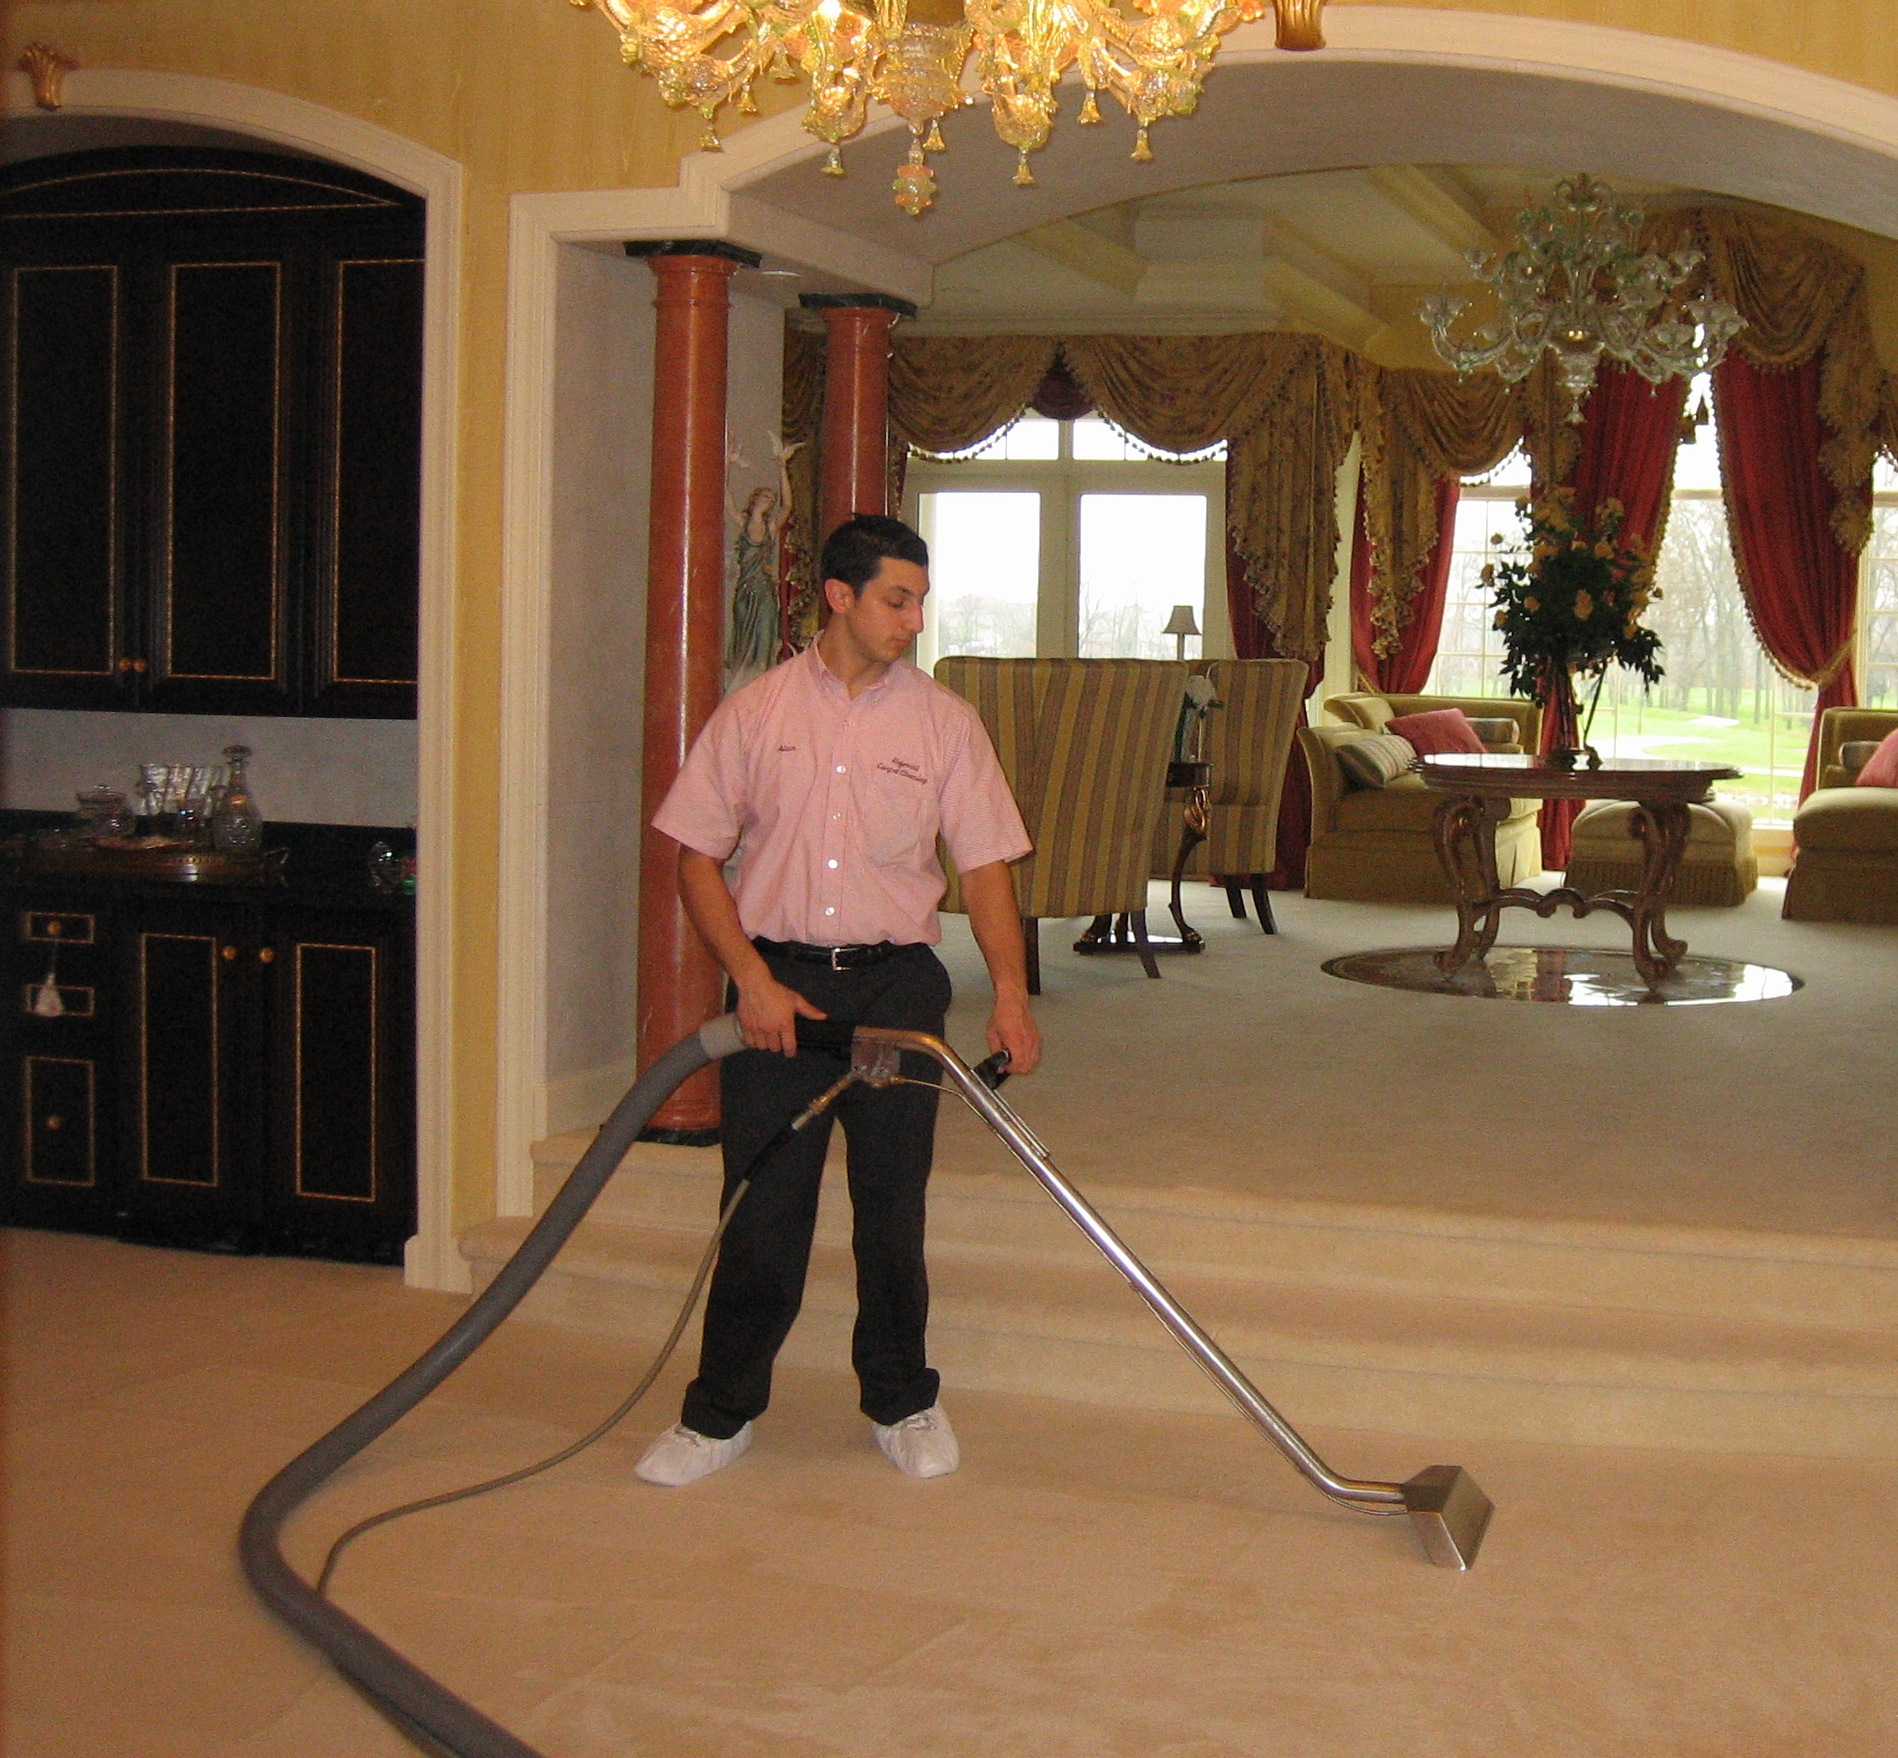 Cleaning Carpet In Home